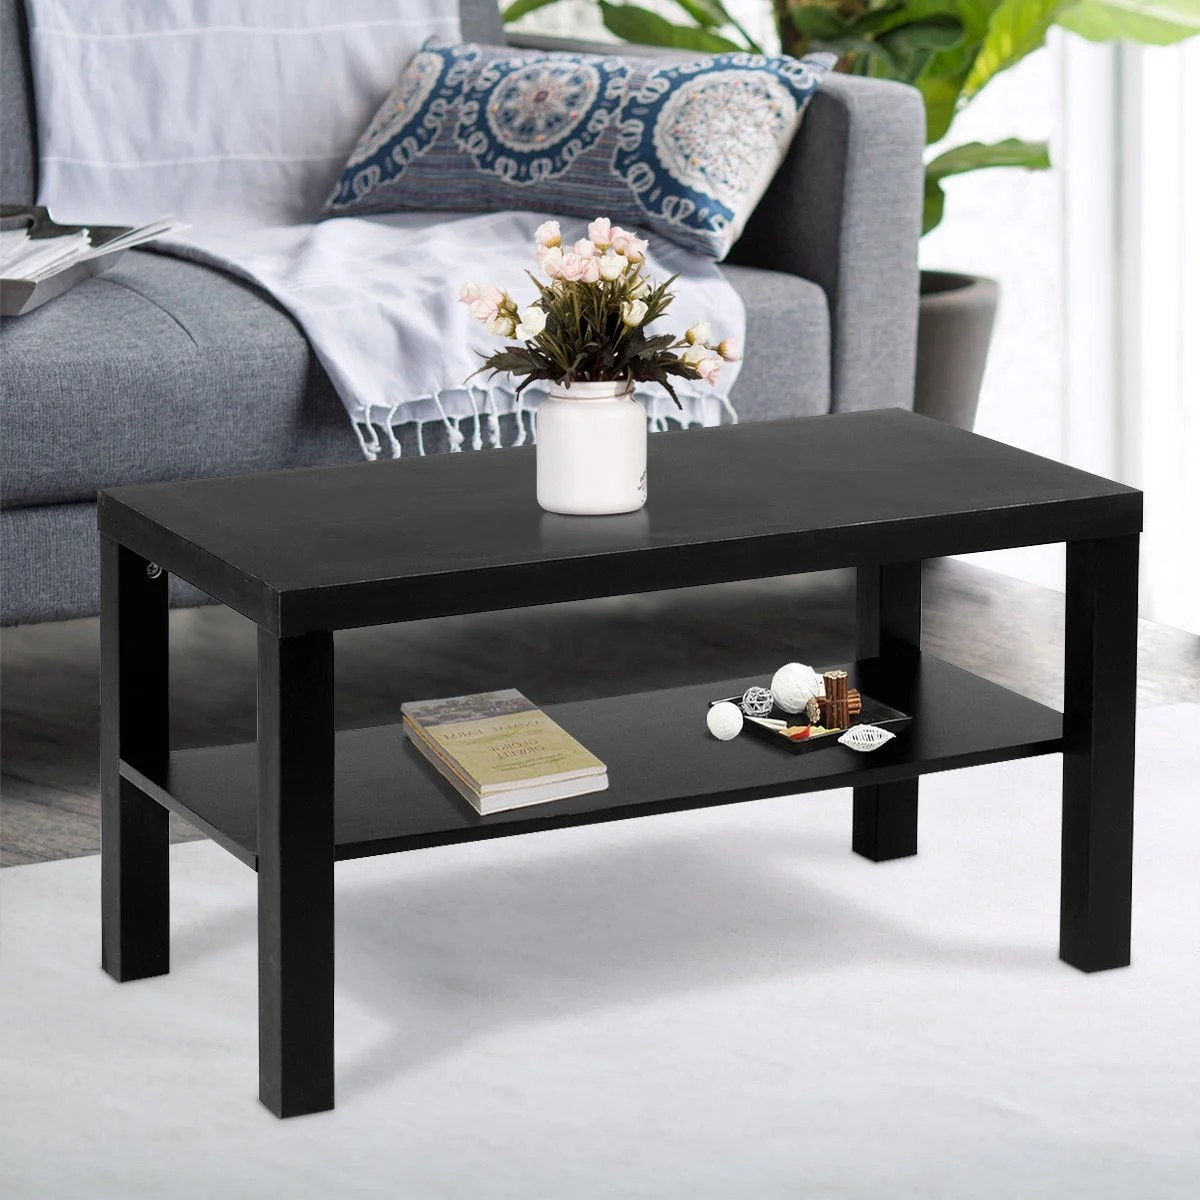 Coffee And End Tables With Storage Costway Coffee End Table Rectangle Modern Living Room Furniture W Storage Shelf Black